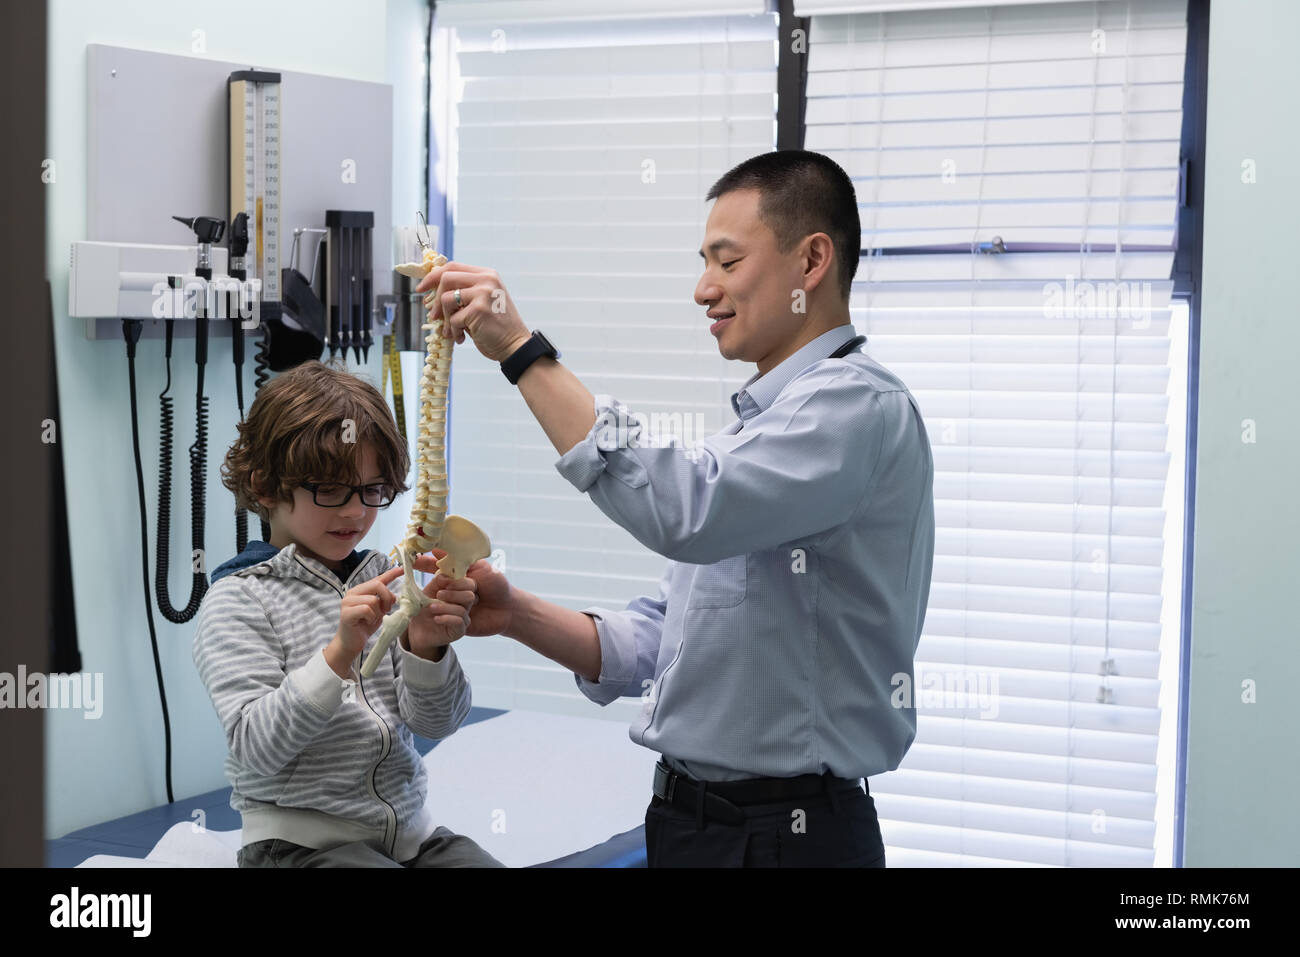 Young asian male doctor showing vertebral column model to caucasian boy patient - Stock Image